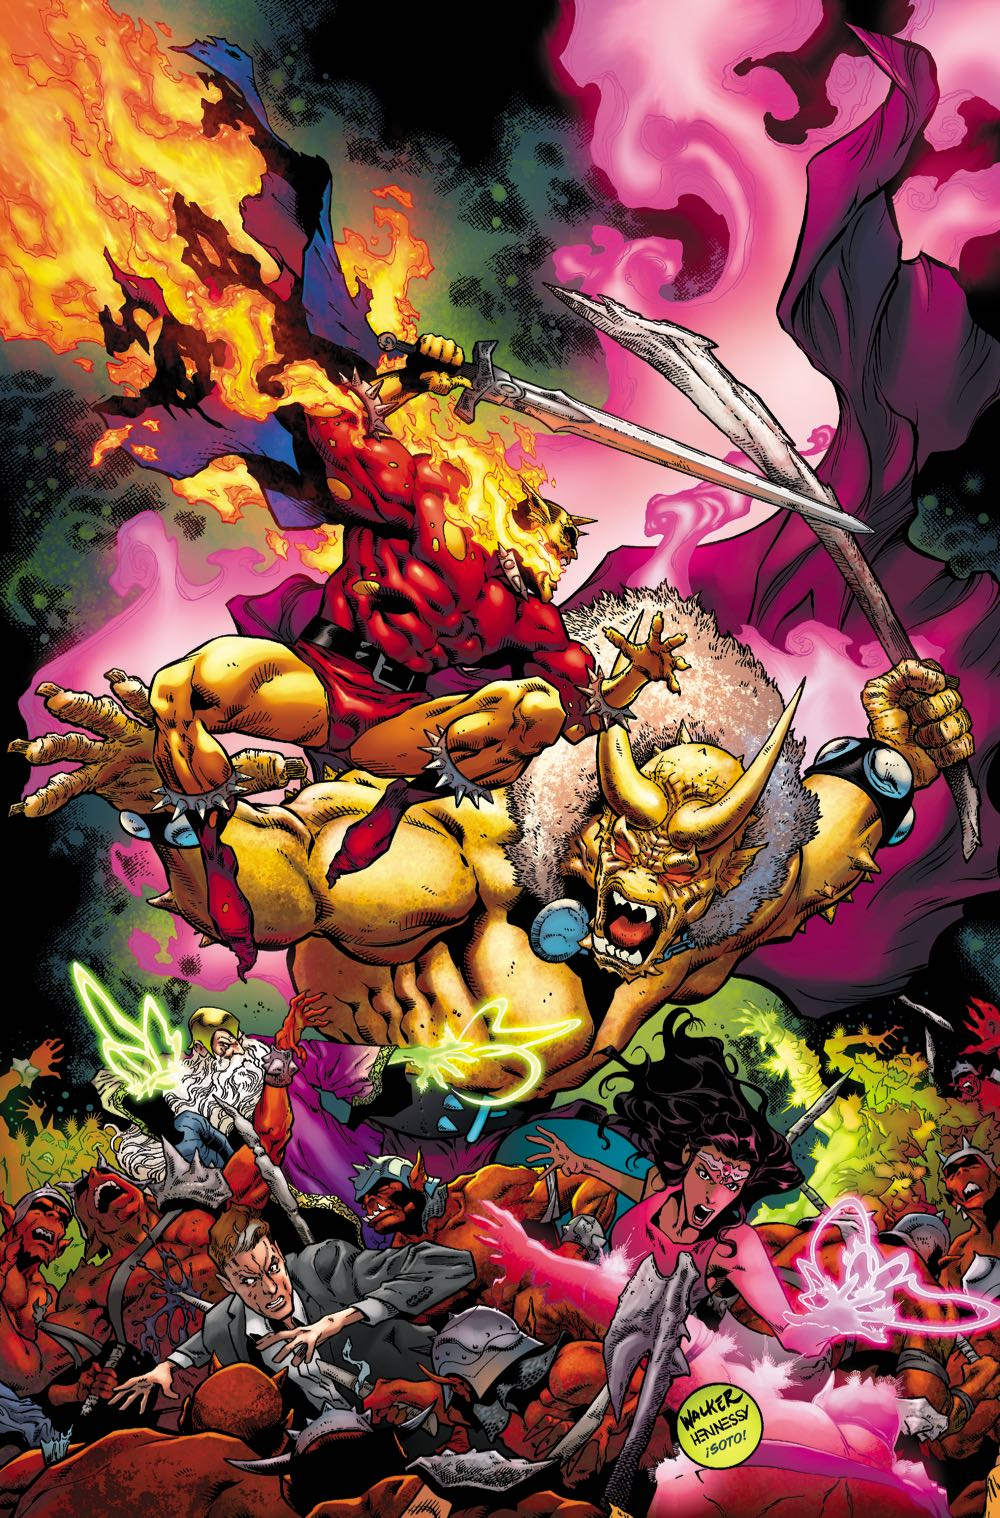 THE DEMON: HELL IS EARTH #6